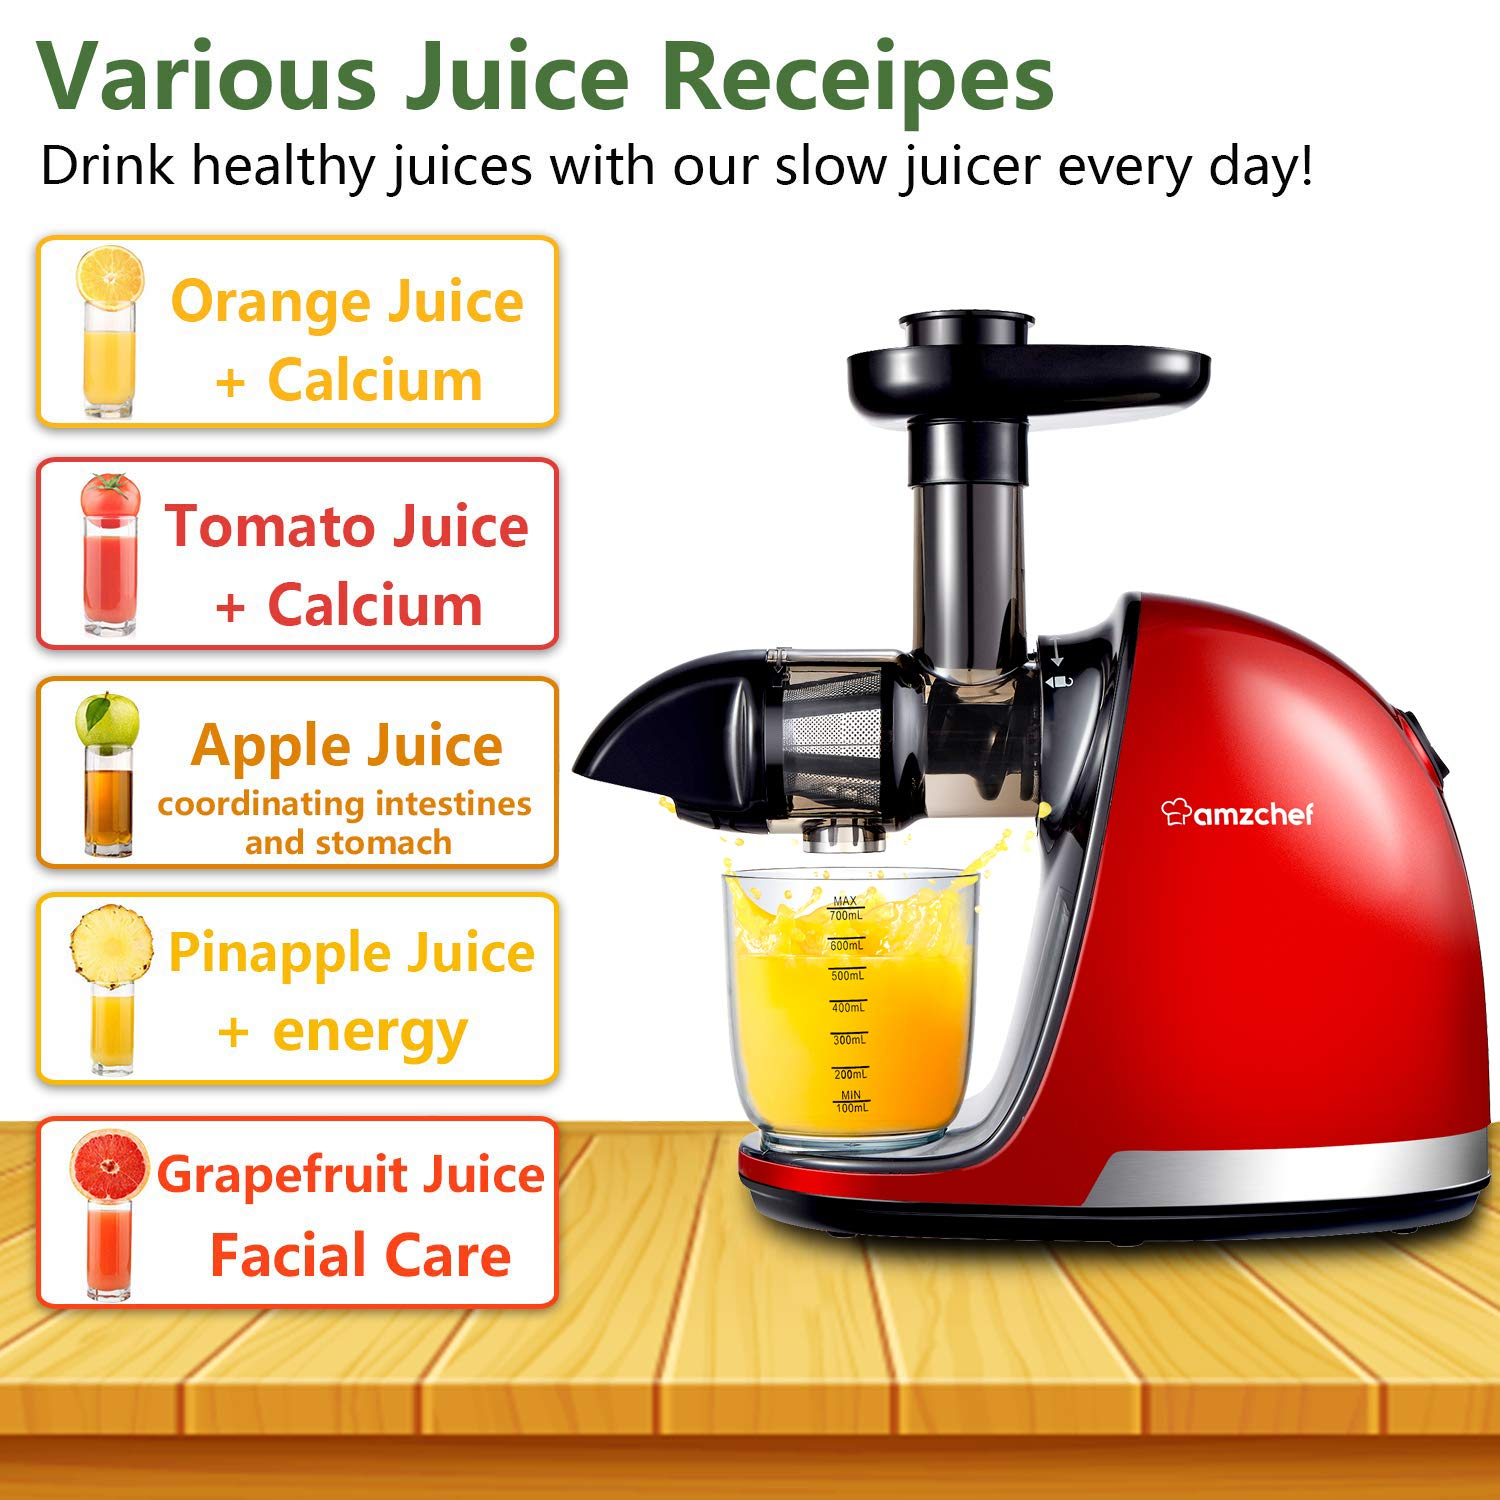 Slow Masticating Juicer,AMZCHEF Juicer Extractor Professional Machine with Quiet Motor//Reverse Function//Easy to Clean with Brush for High Nutrient Fruit /& Vegetable Juice